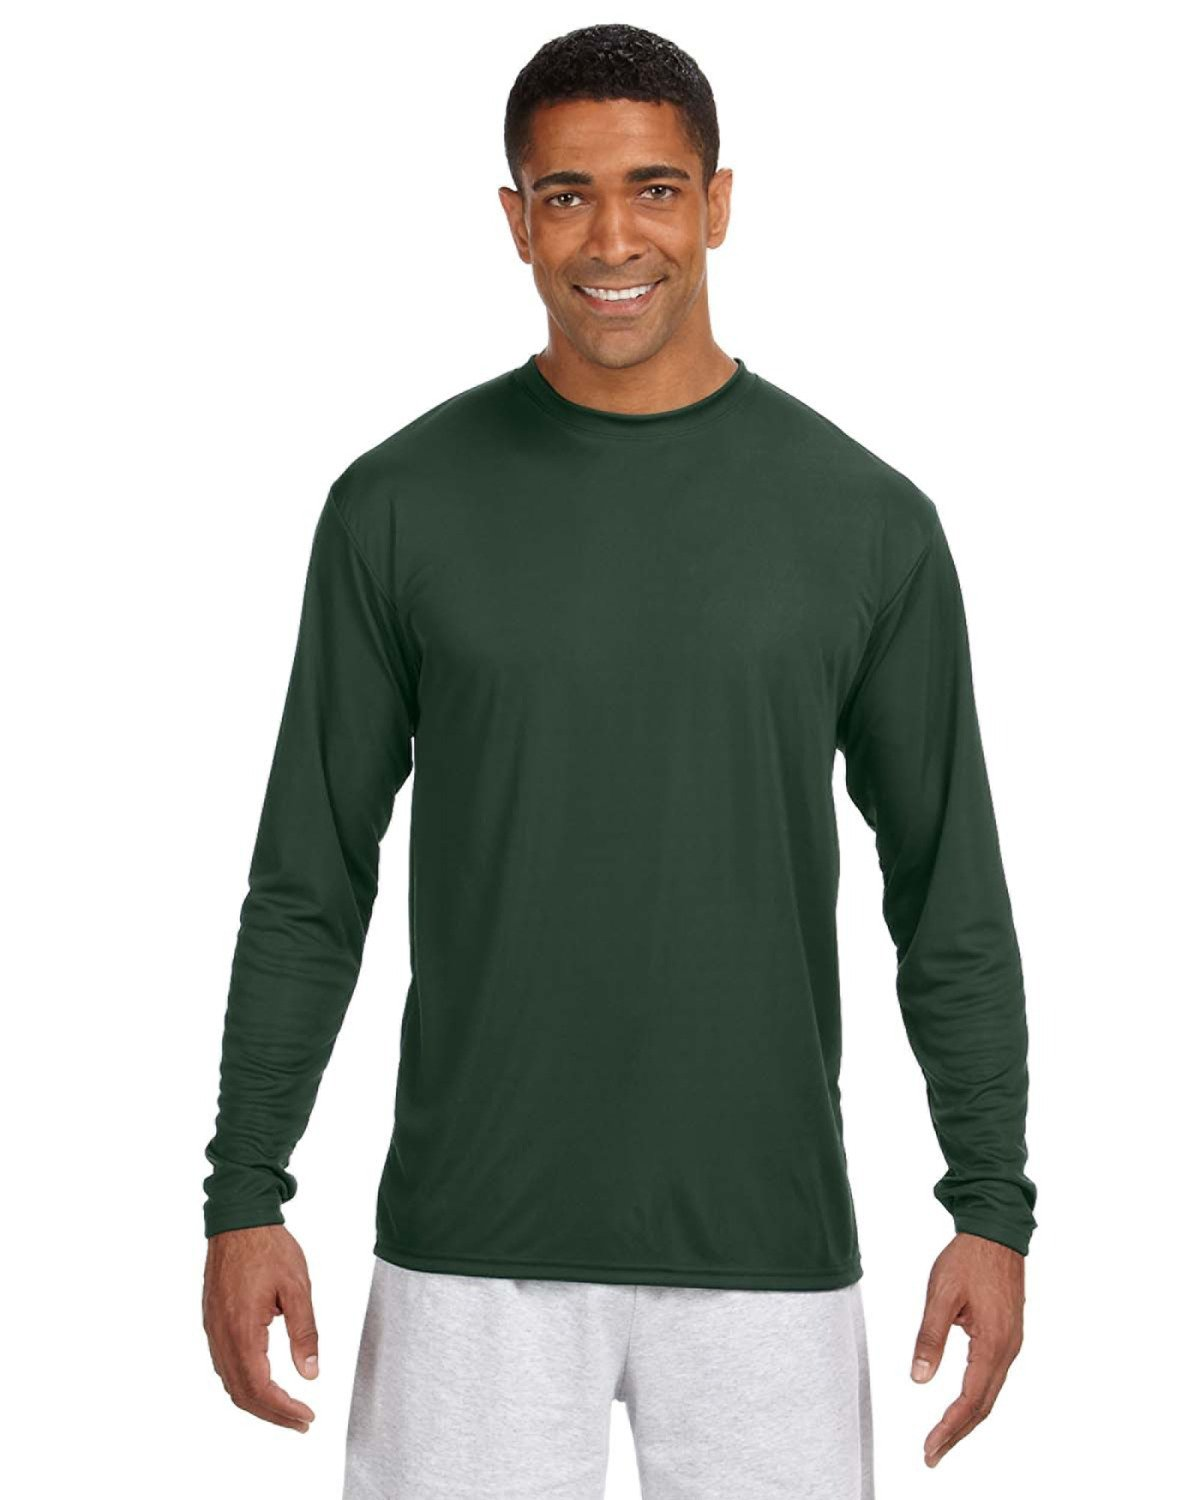 A4 Men's Cooling Performance Long Sleeve T-Shirt FOREST GREEN